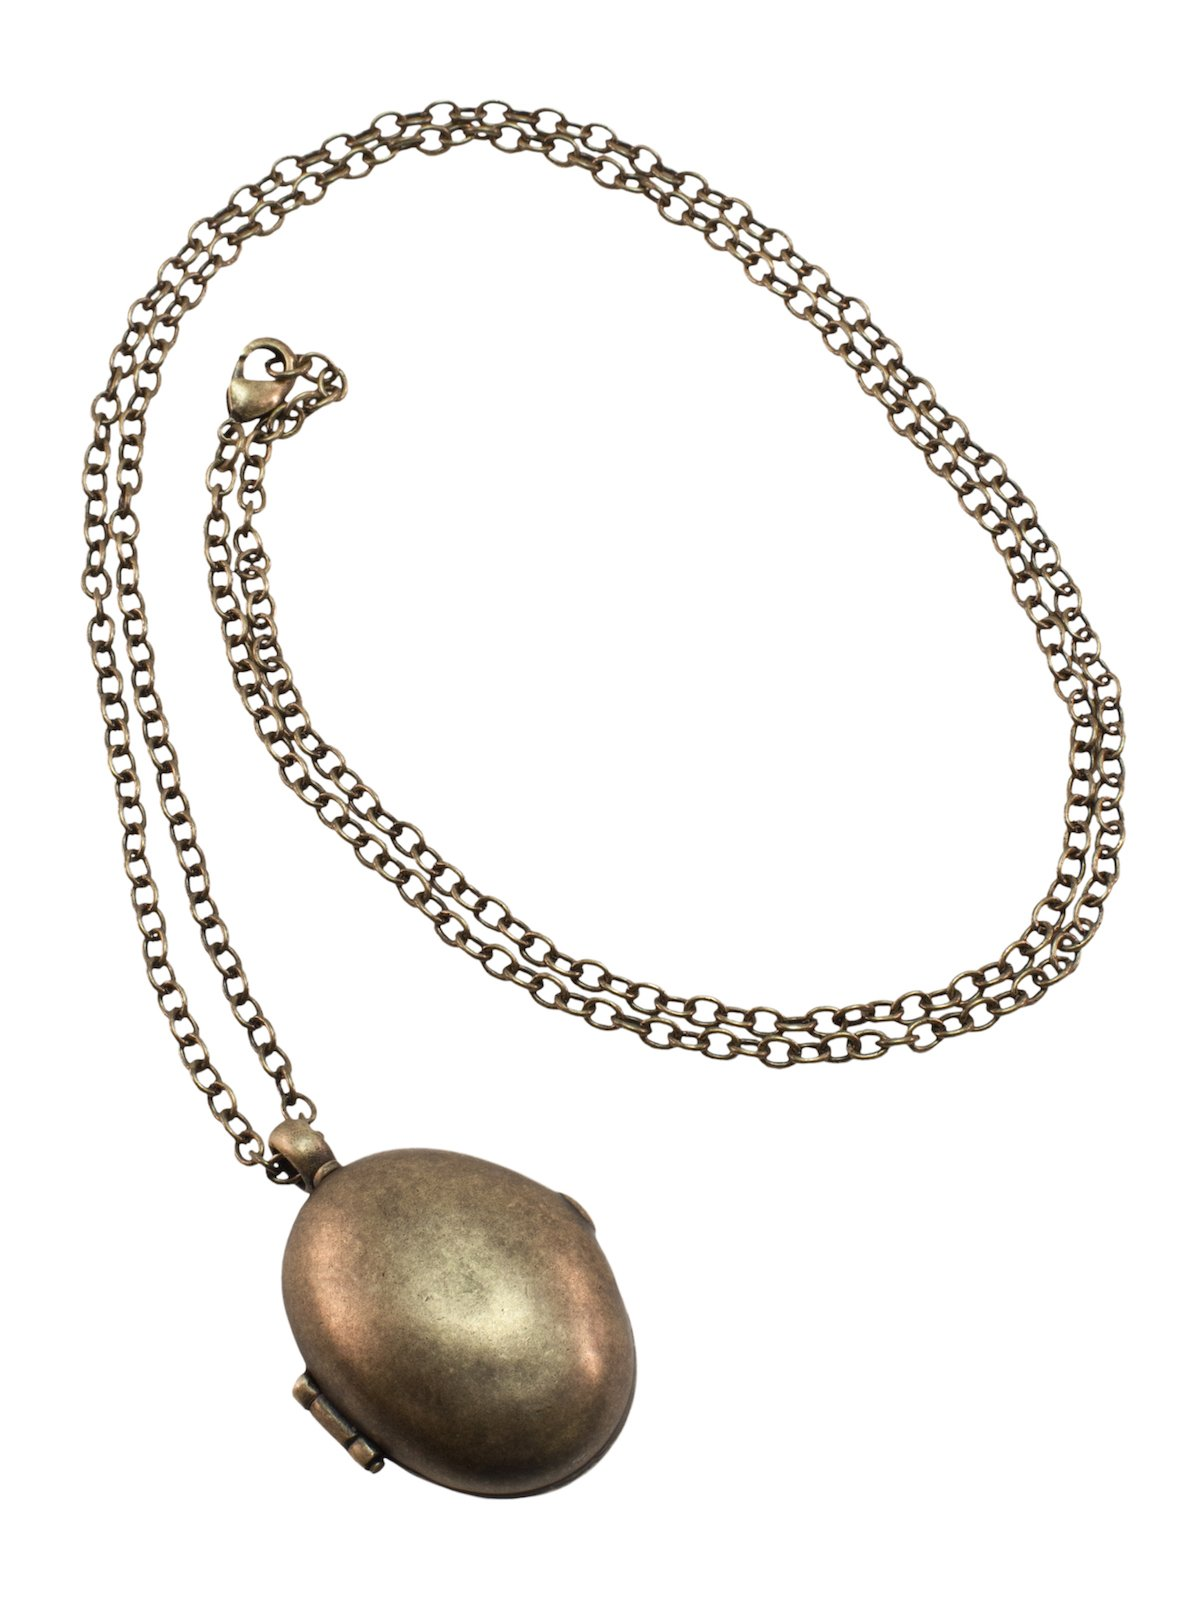 elope Tina Goldstein Costume Locket Necklace for Women by